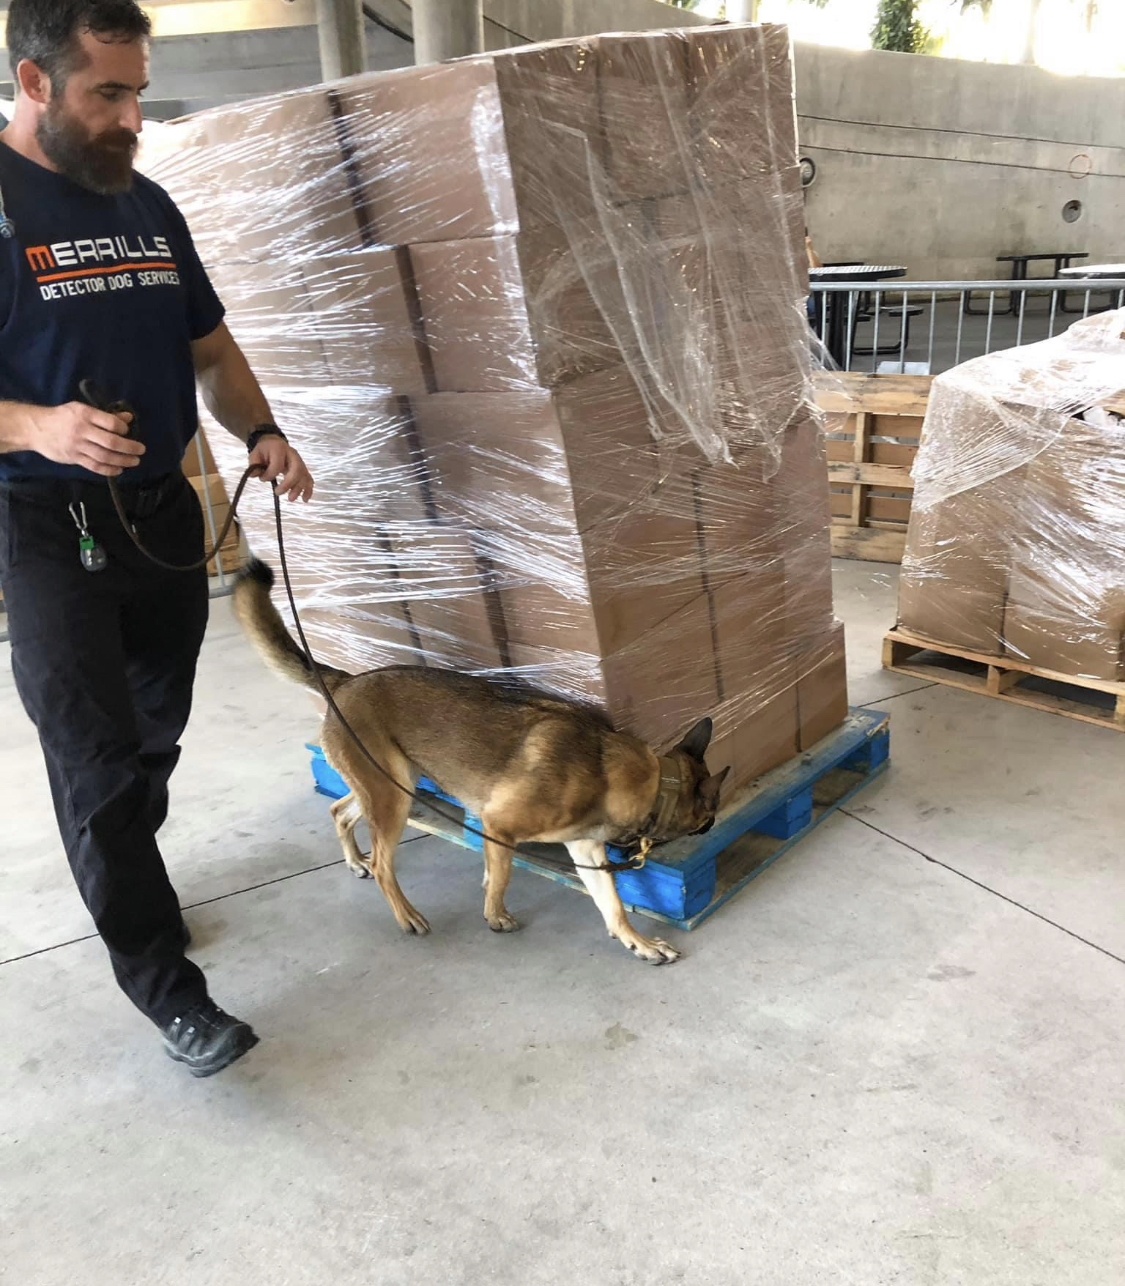 K9 Abbie searching cargo pallets.